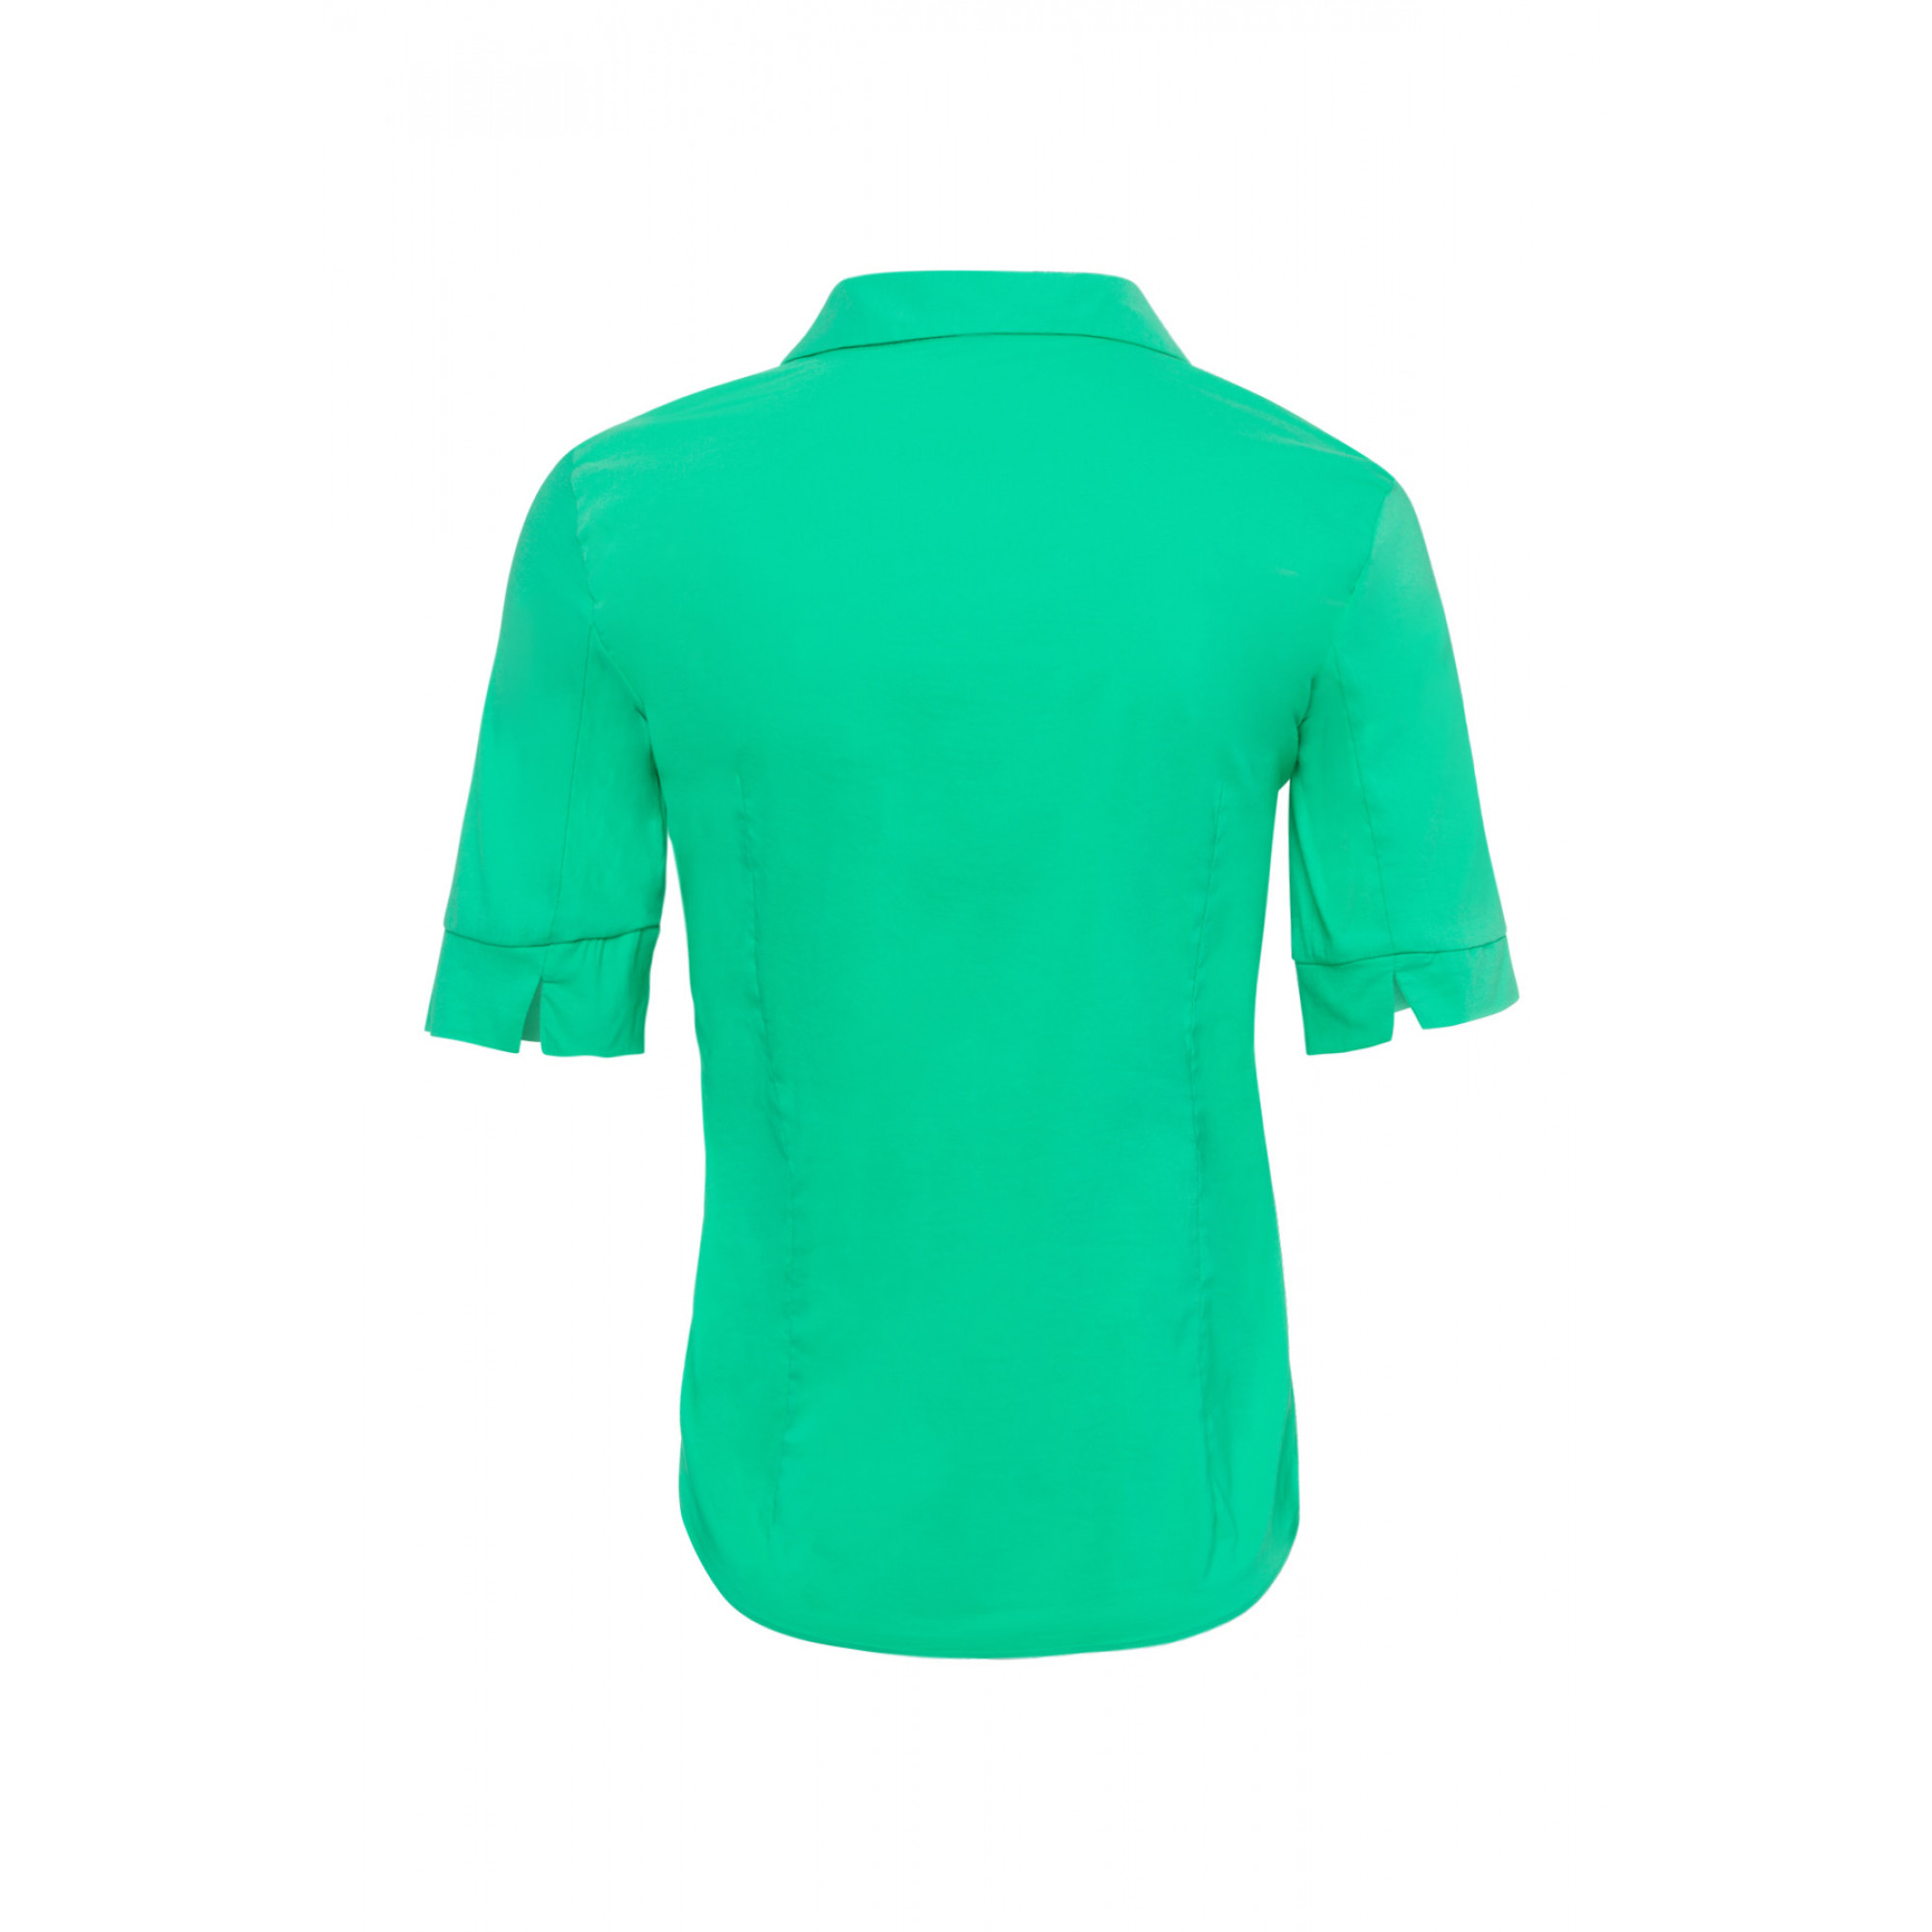 Baumwoll/Stretch Bluse, spring green 91832566-0642 2